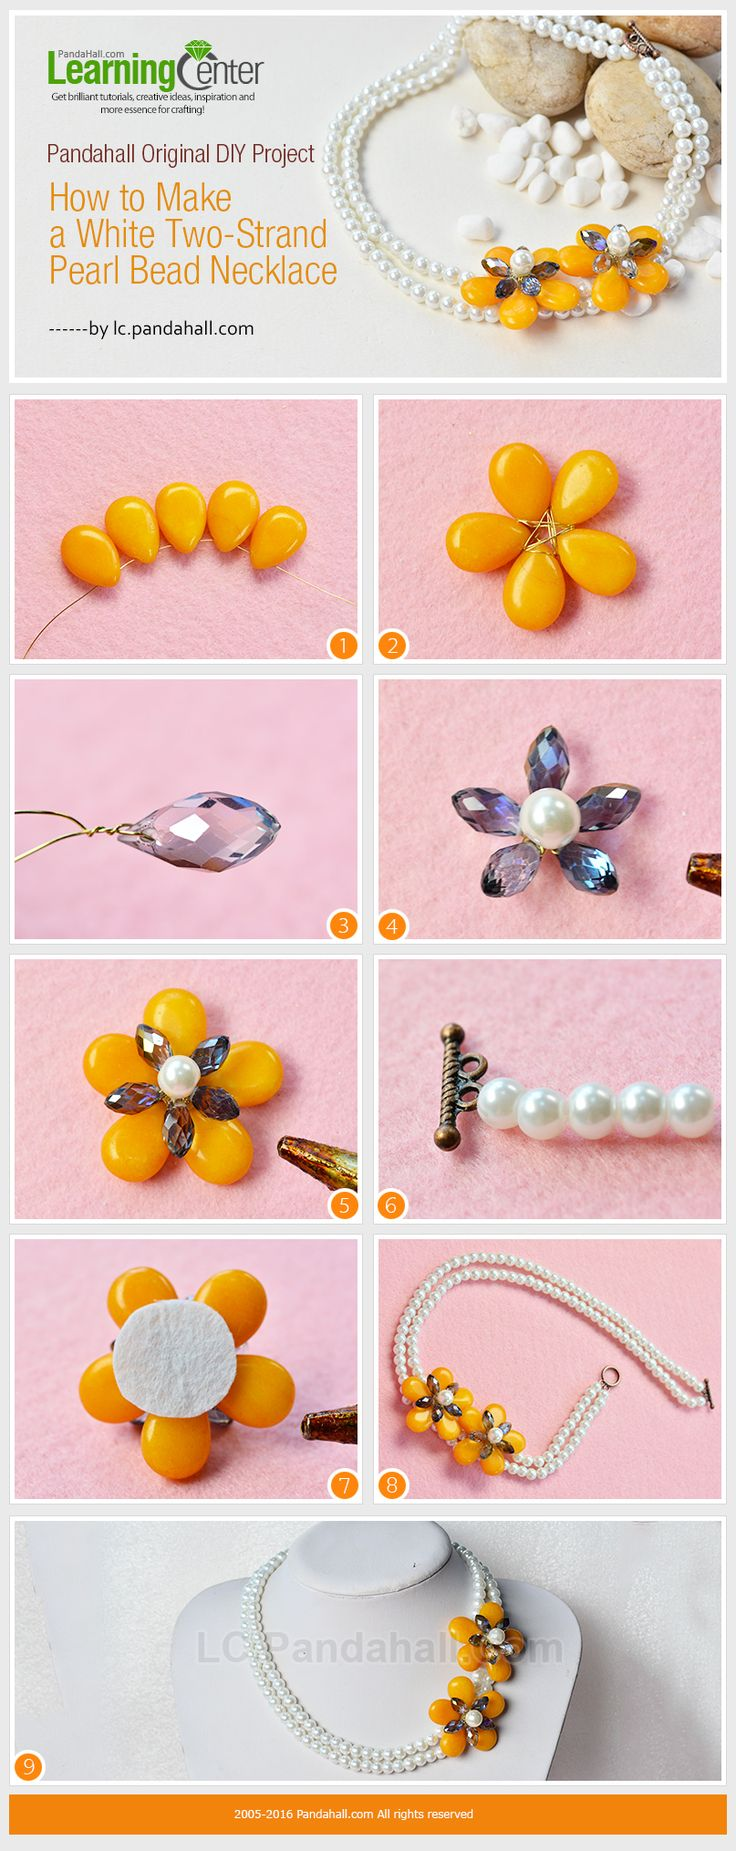 Pandahall Original DIY Project - How to Make a White Two-Strand Pearl Bead Necklace from LC.Pandahall.com #pandahall